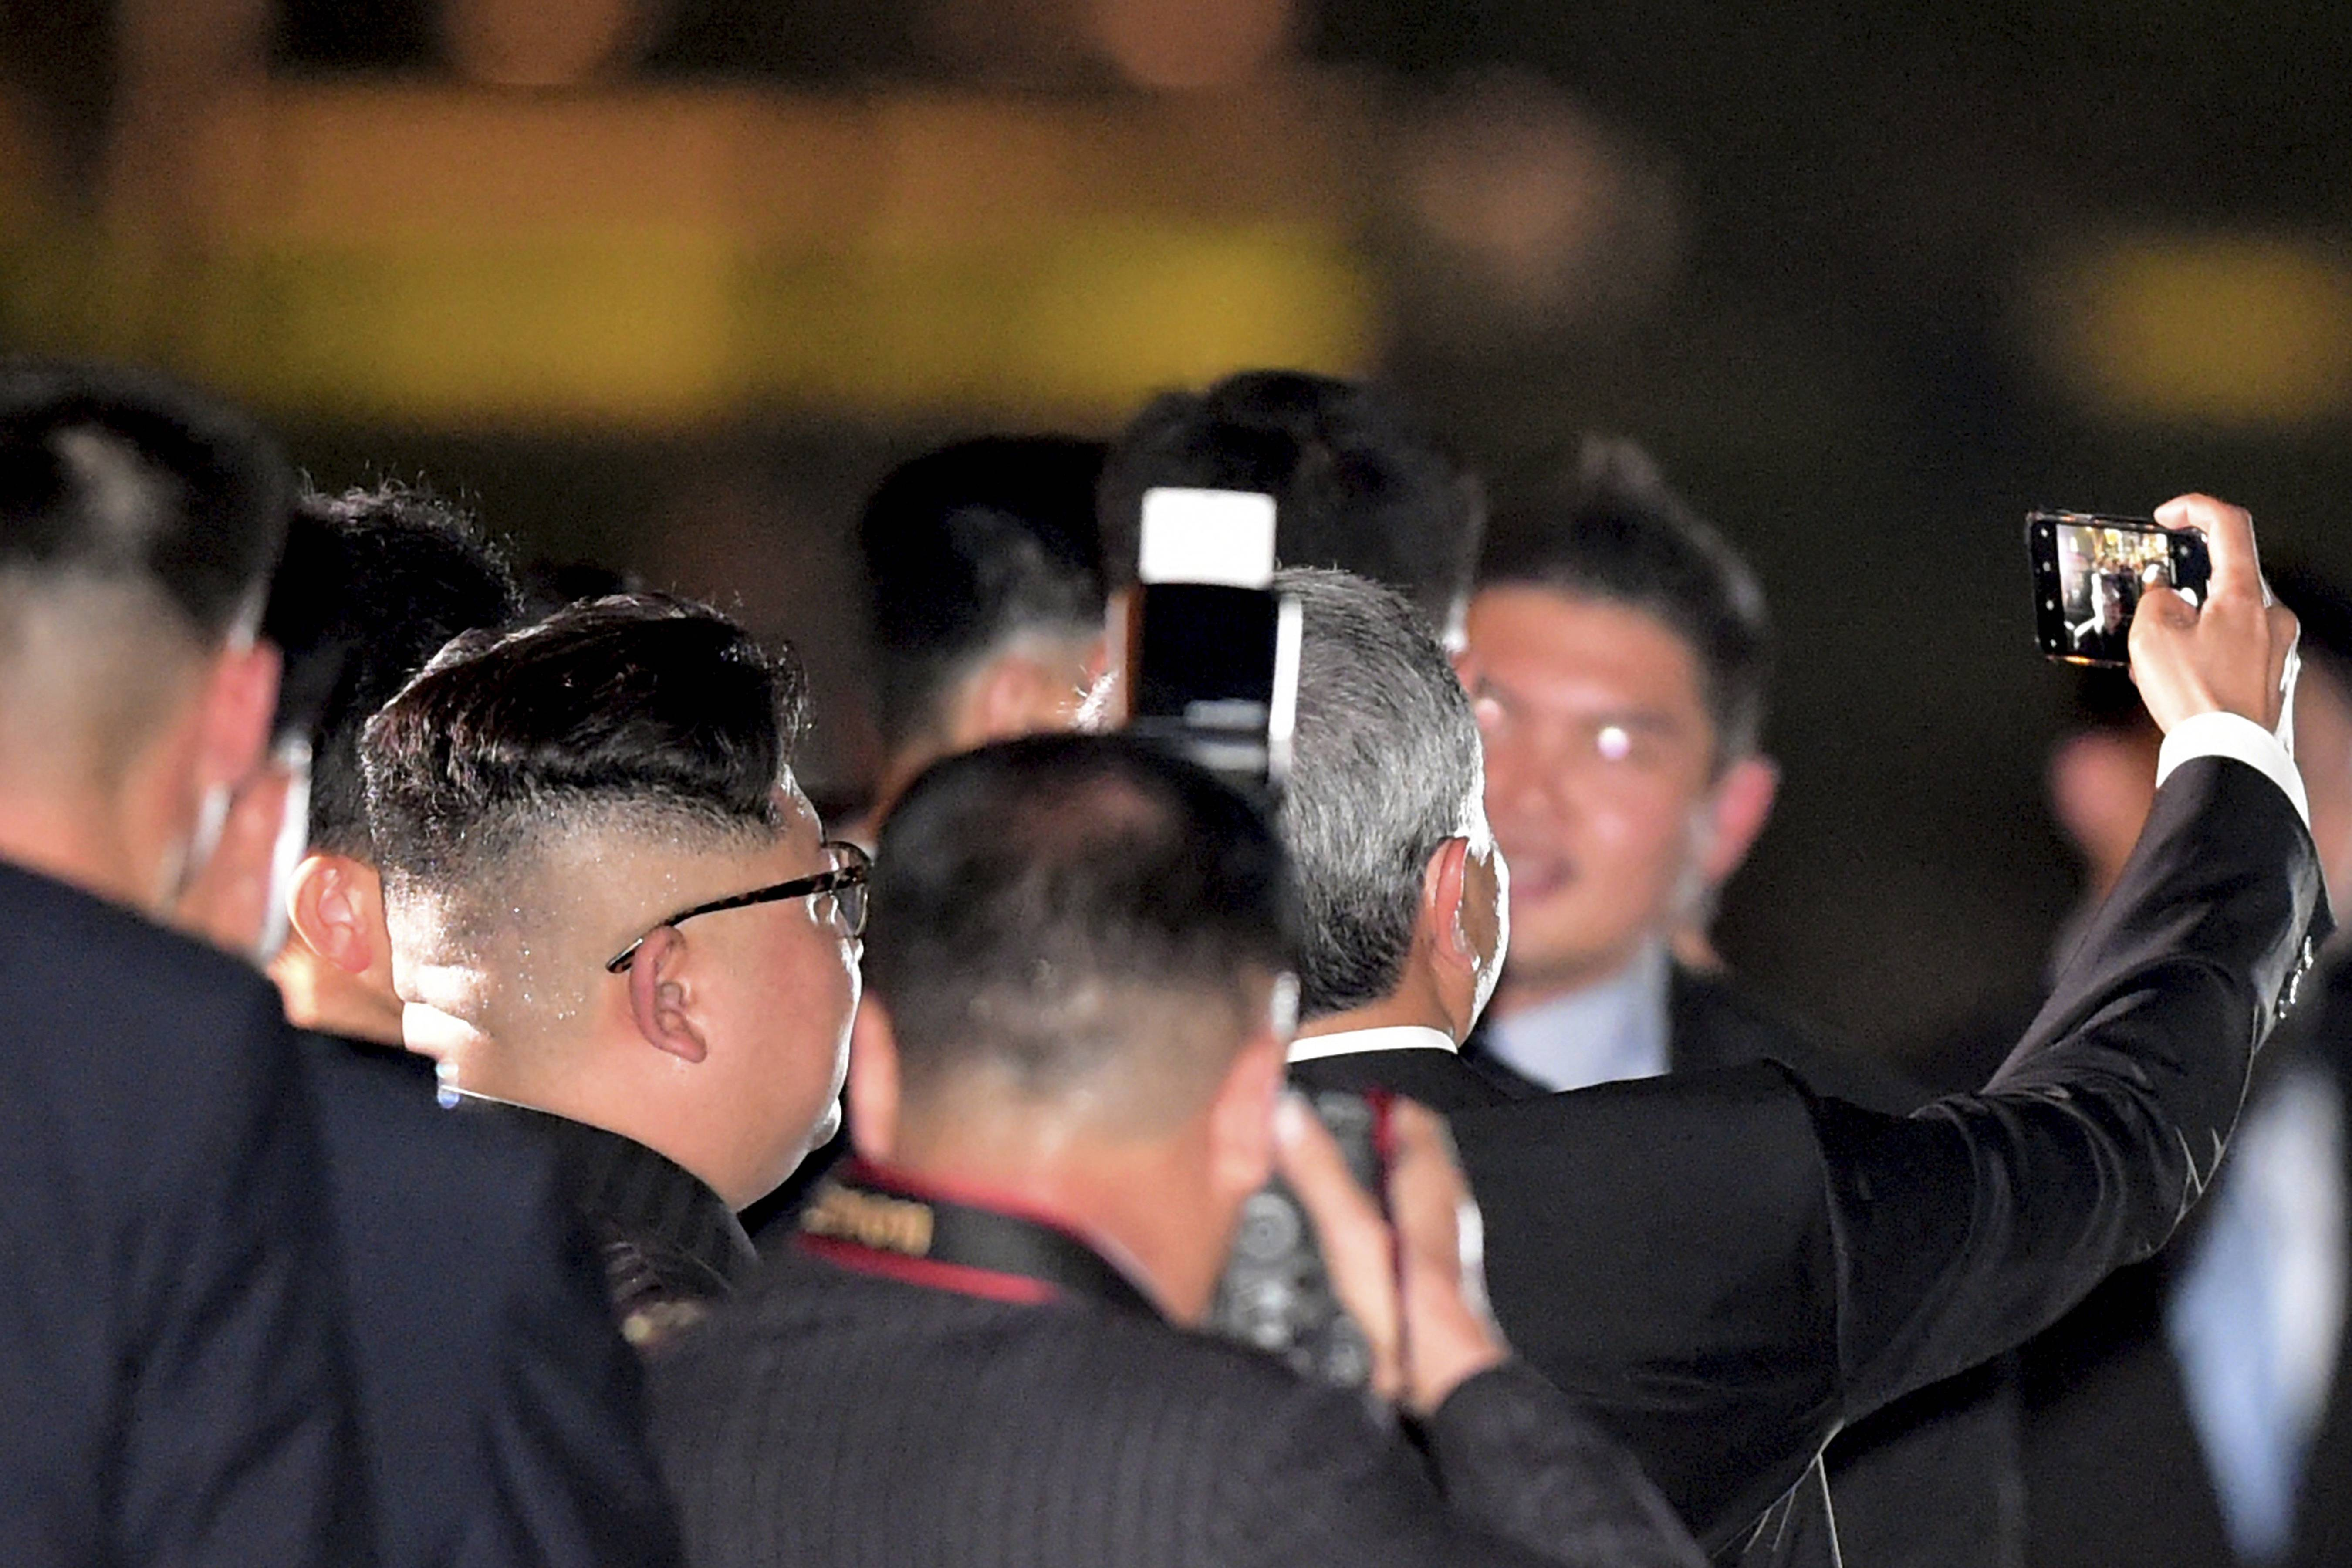 North Korean leader Kim Jong Un, seen from back, takes a selfie with Singapore Foreign Minister Vivian Balakrishnan as they walk on the Jubilee Bridge as he tours Singapore on Monday ahead of the summit between U.S. leader Trump and North Korea leader Kim Jong Un.